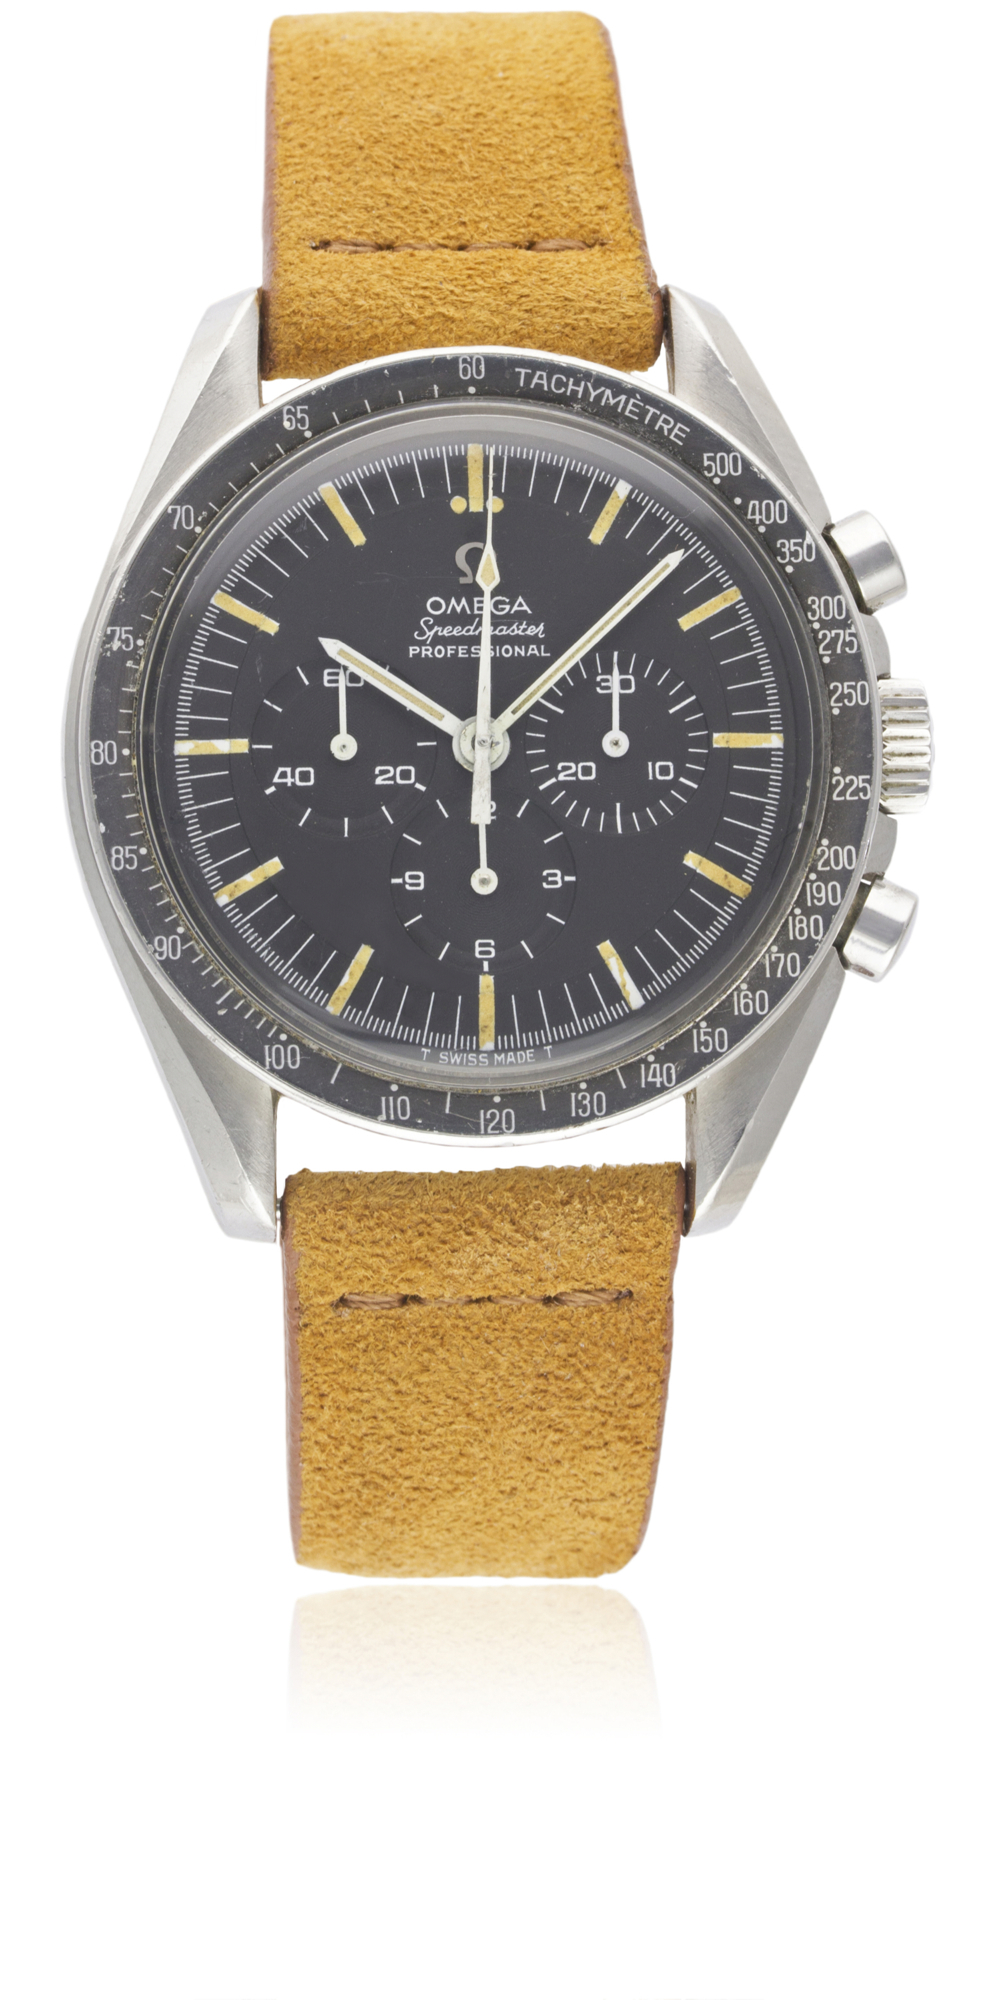 Lot 179 - A RARE GENTLEMAN'S STAINLESS STEEL OMEGA SPEEDMASTER PROFESSIONAL CHRONOGRAPH WRIST WATCH CIRCA